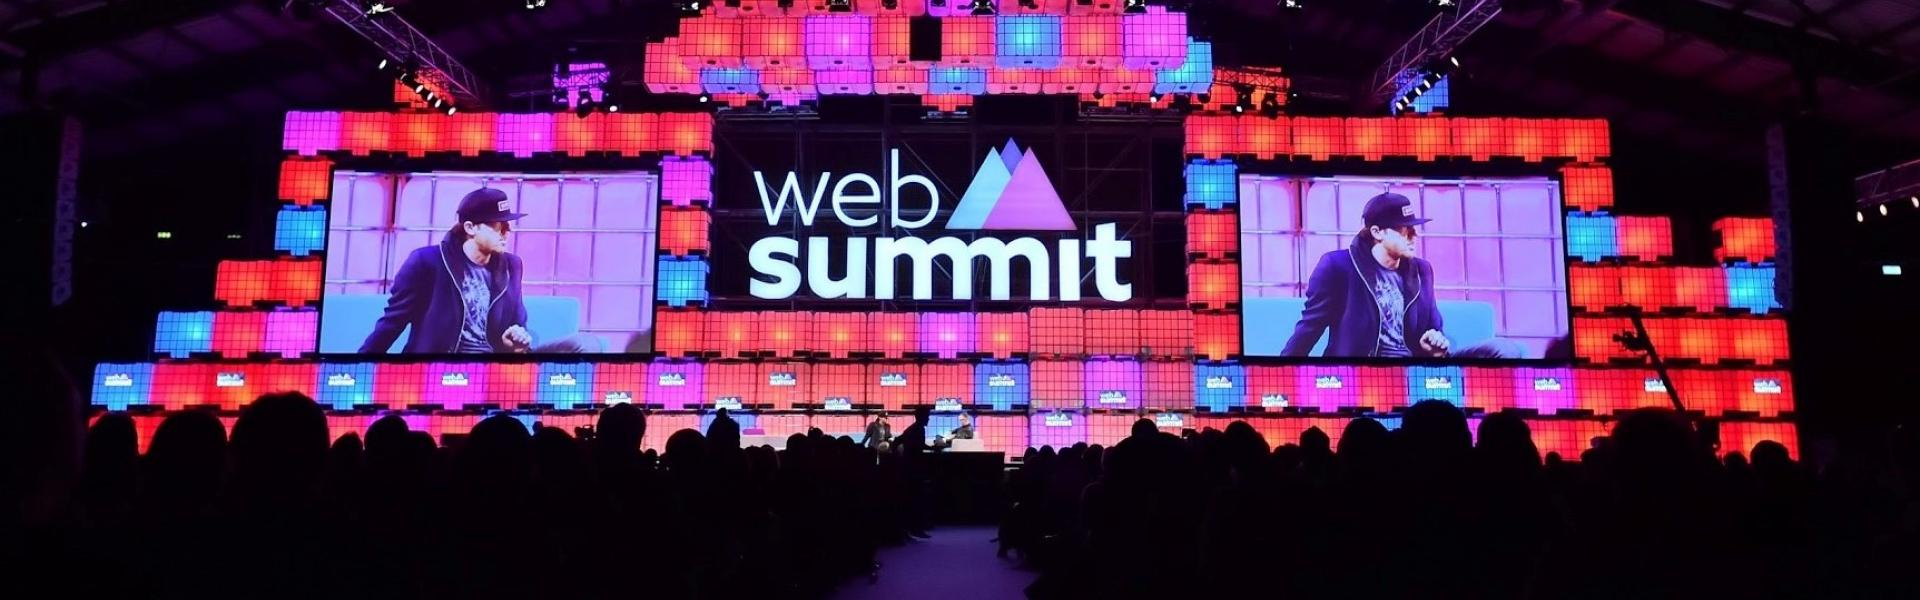 VISEO au Web Summit 2019